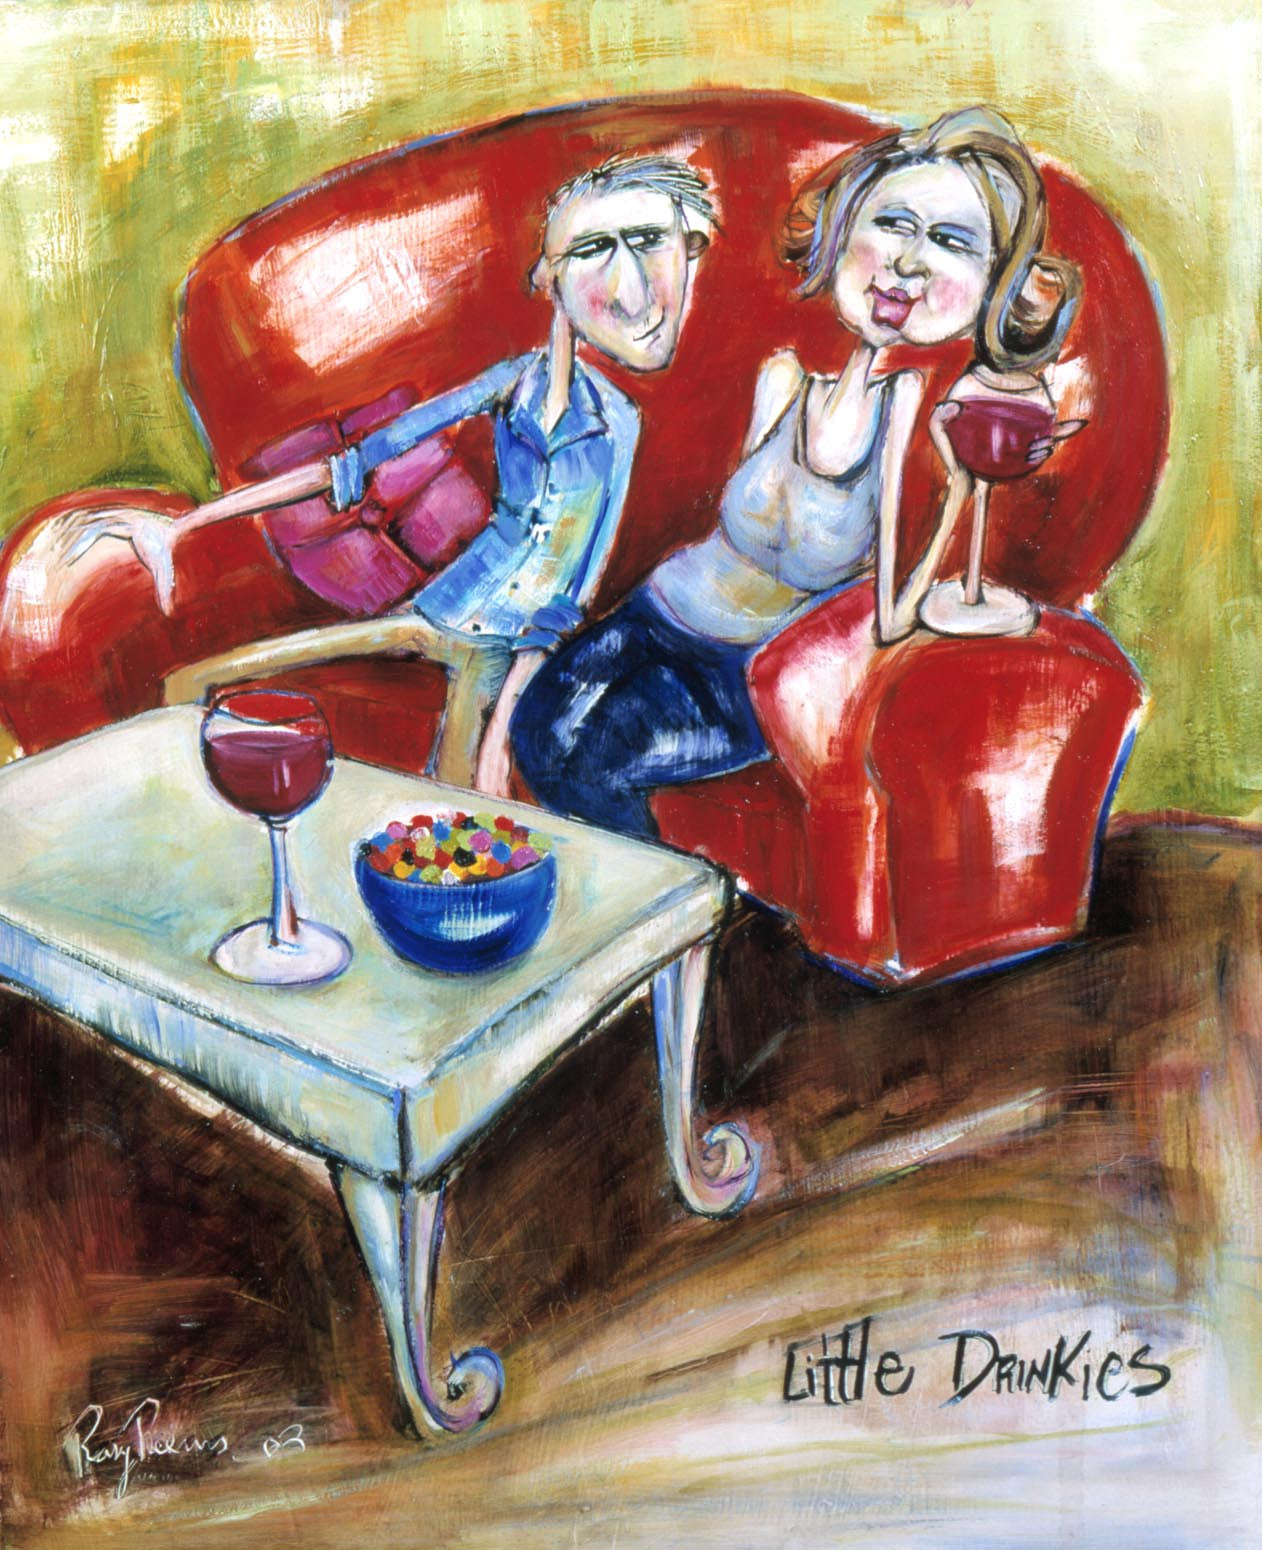 LITTLE DRINKIES - YEAR 2003